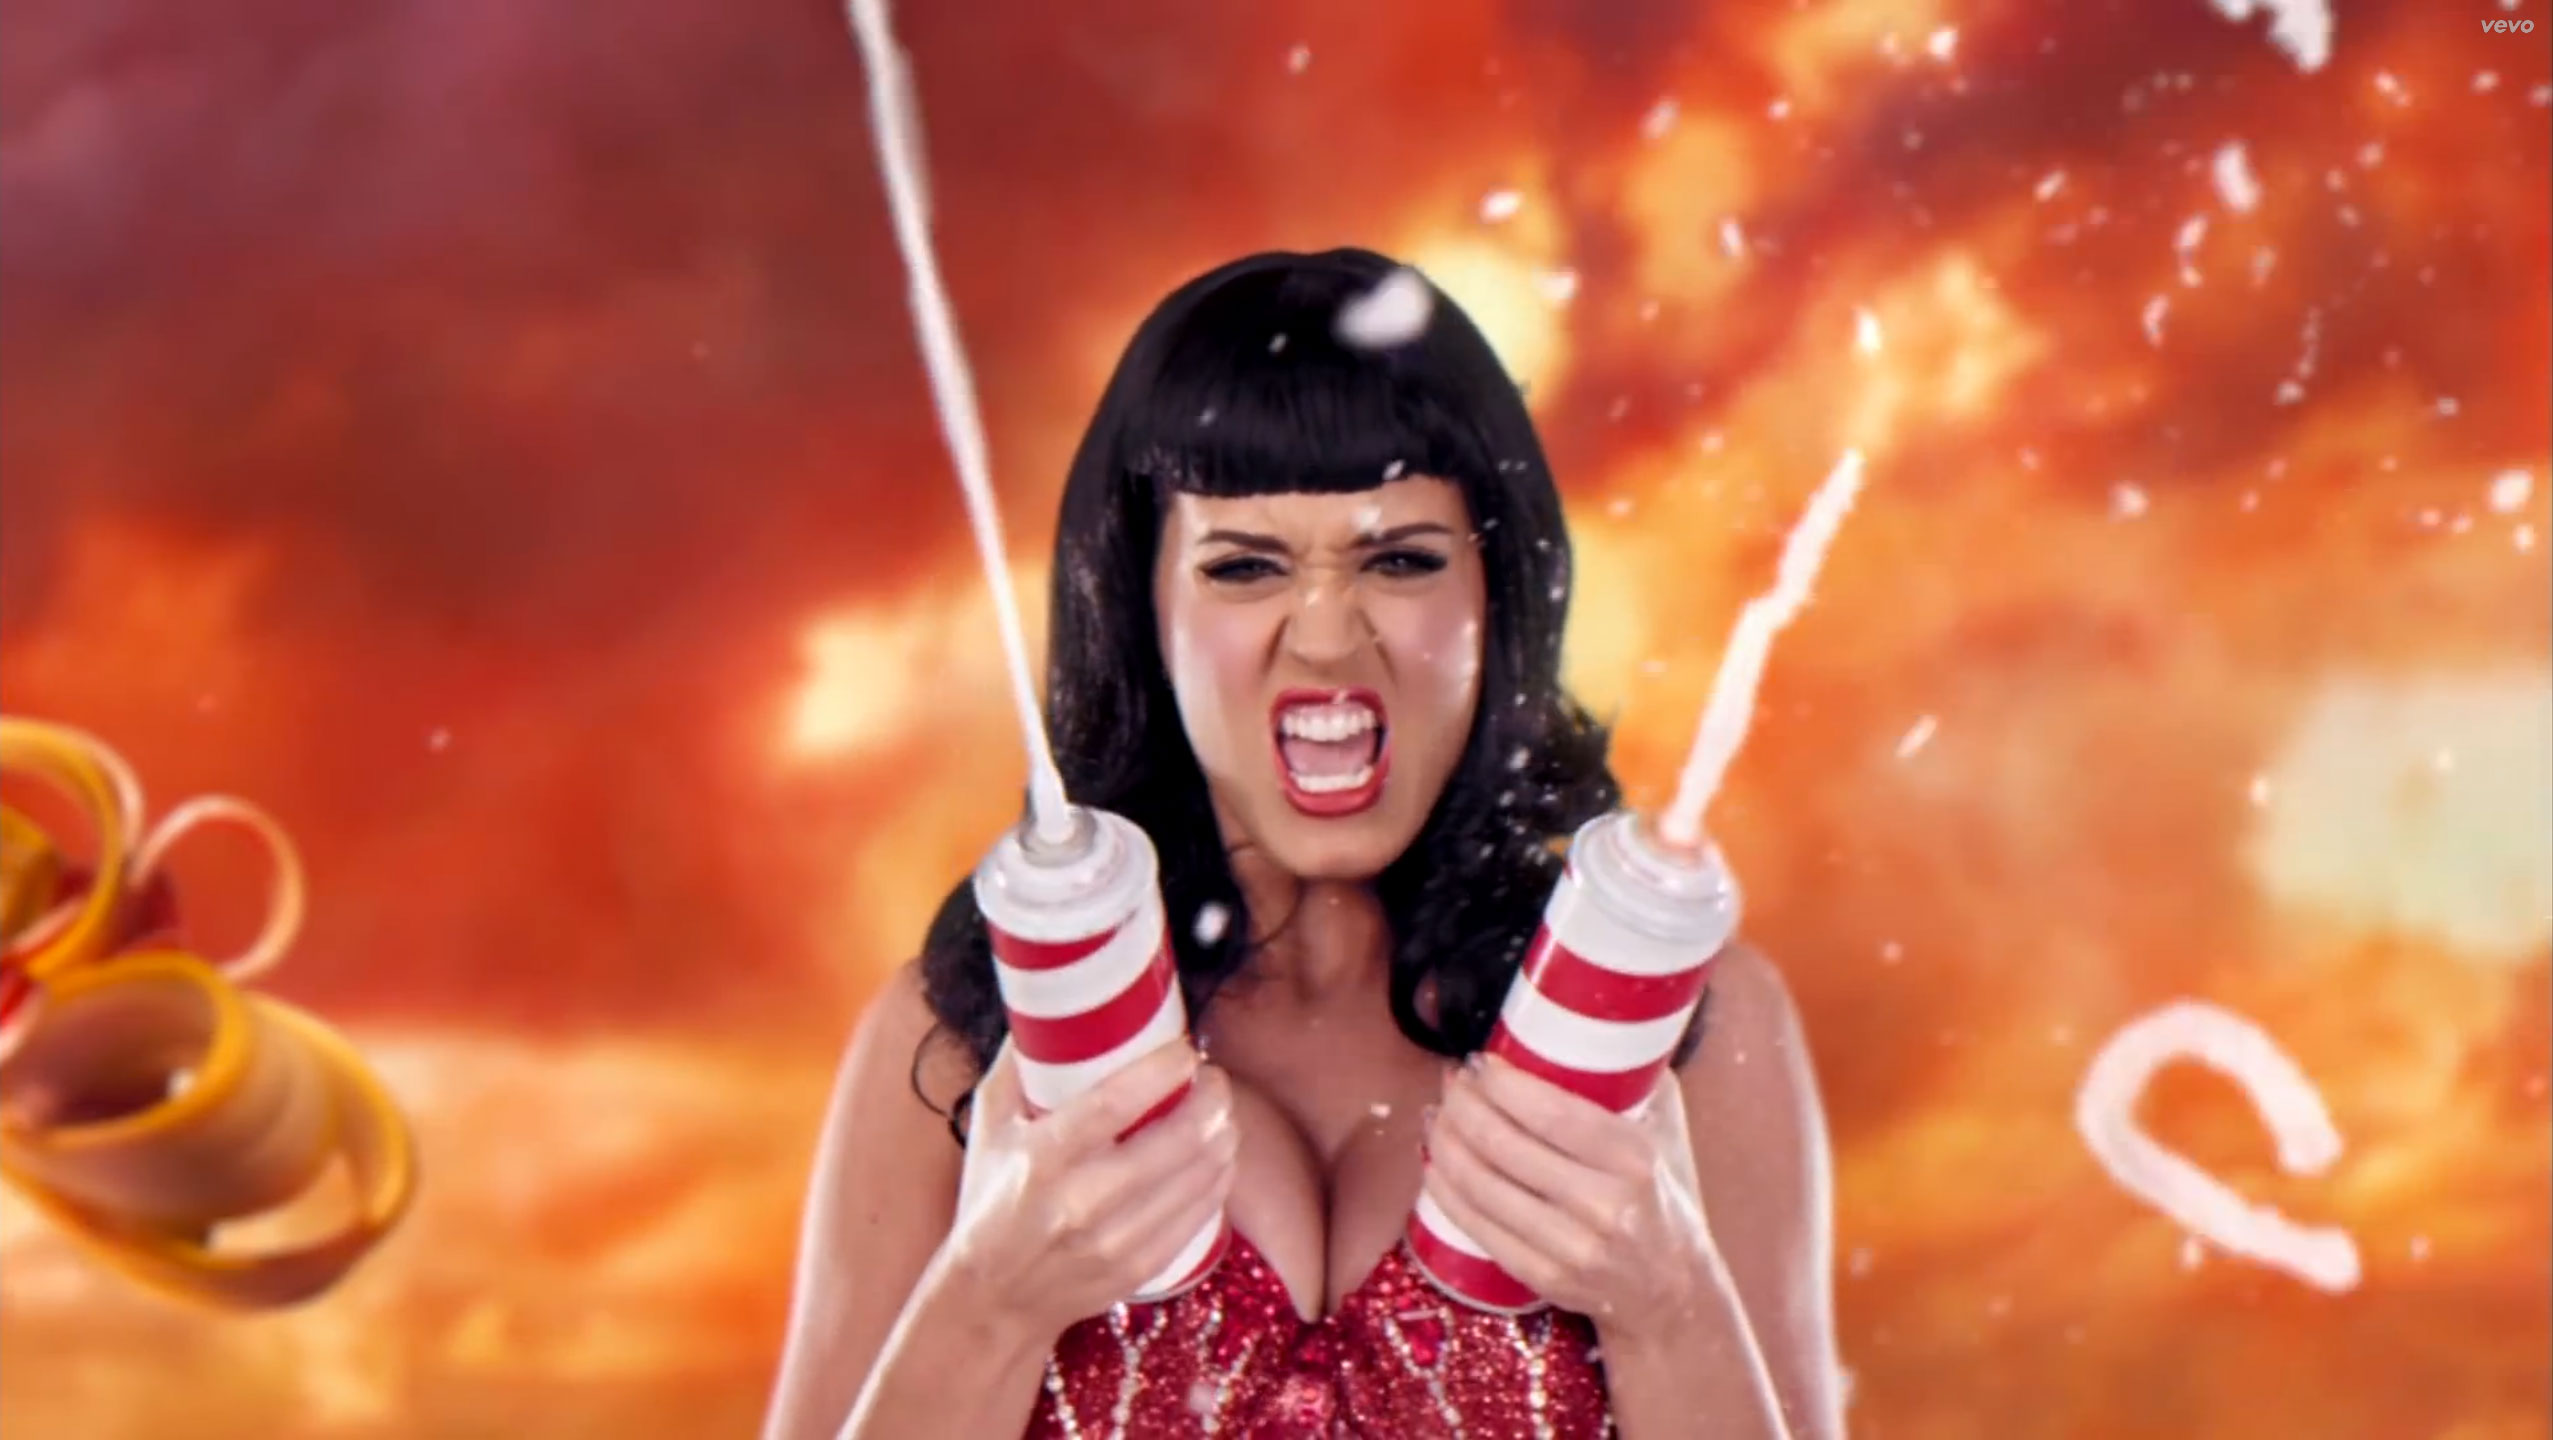 Katy Perry's Whipped Cream Bra The singer debuted this bra in the Candy Land themed-video for her 2010 hit single California Gurls, which features Perry dressed in several dessert-centric outfits.